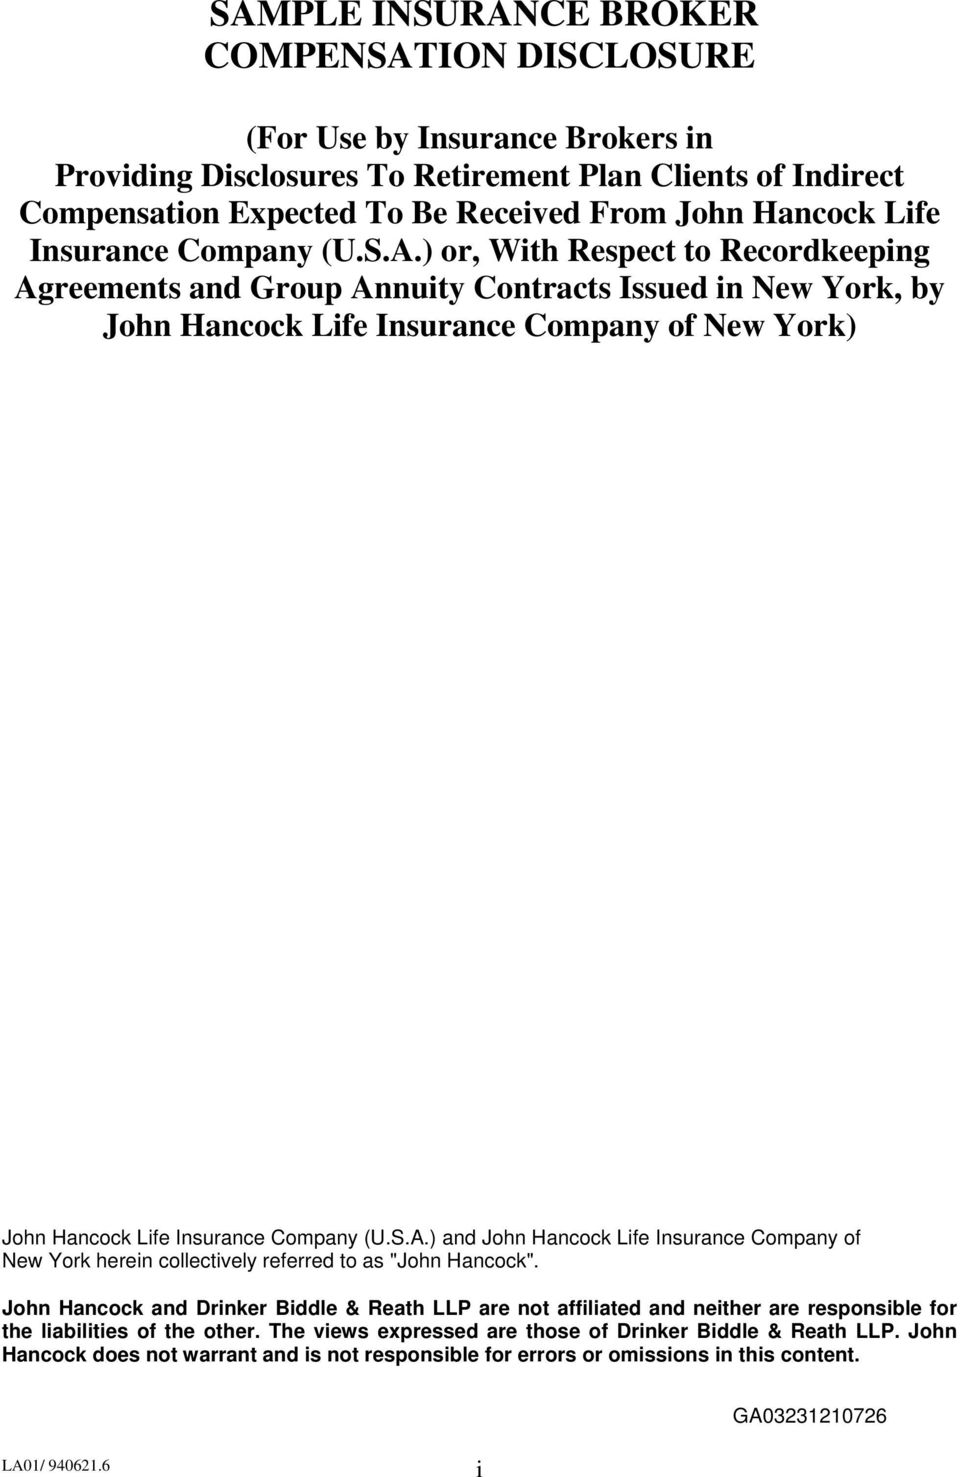 ) or, With Respect to Recordkeeping Agreements and Group Annuity Contracts Issued in New York, by John Hancock Life Insurance Company of New York) John Hancock ) and John Hancock Life Insurance